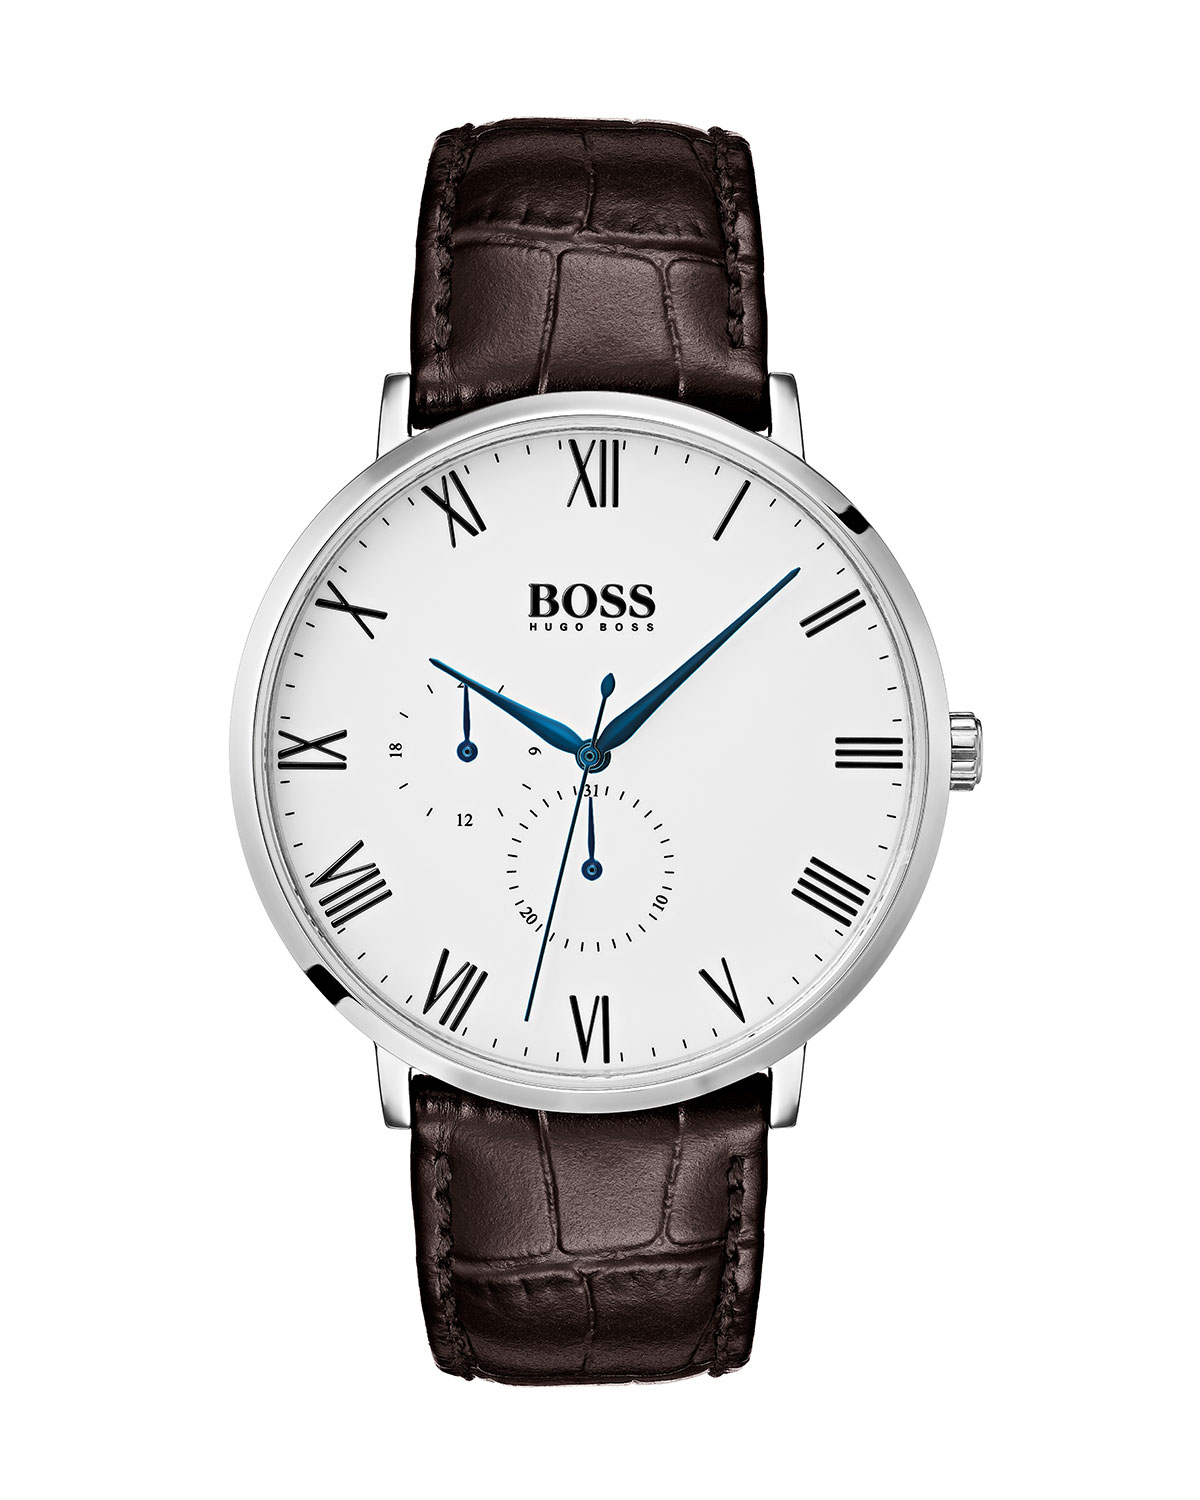 451e37e33 Hugo Boss Men's William Analog Watch with Leather Strap, White/Brown ...